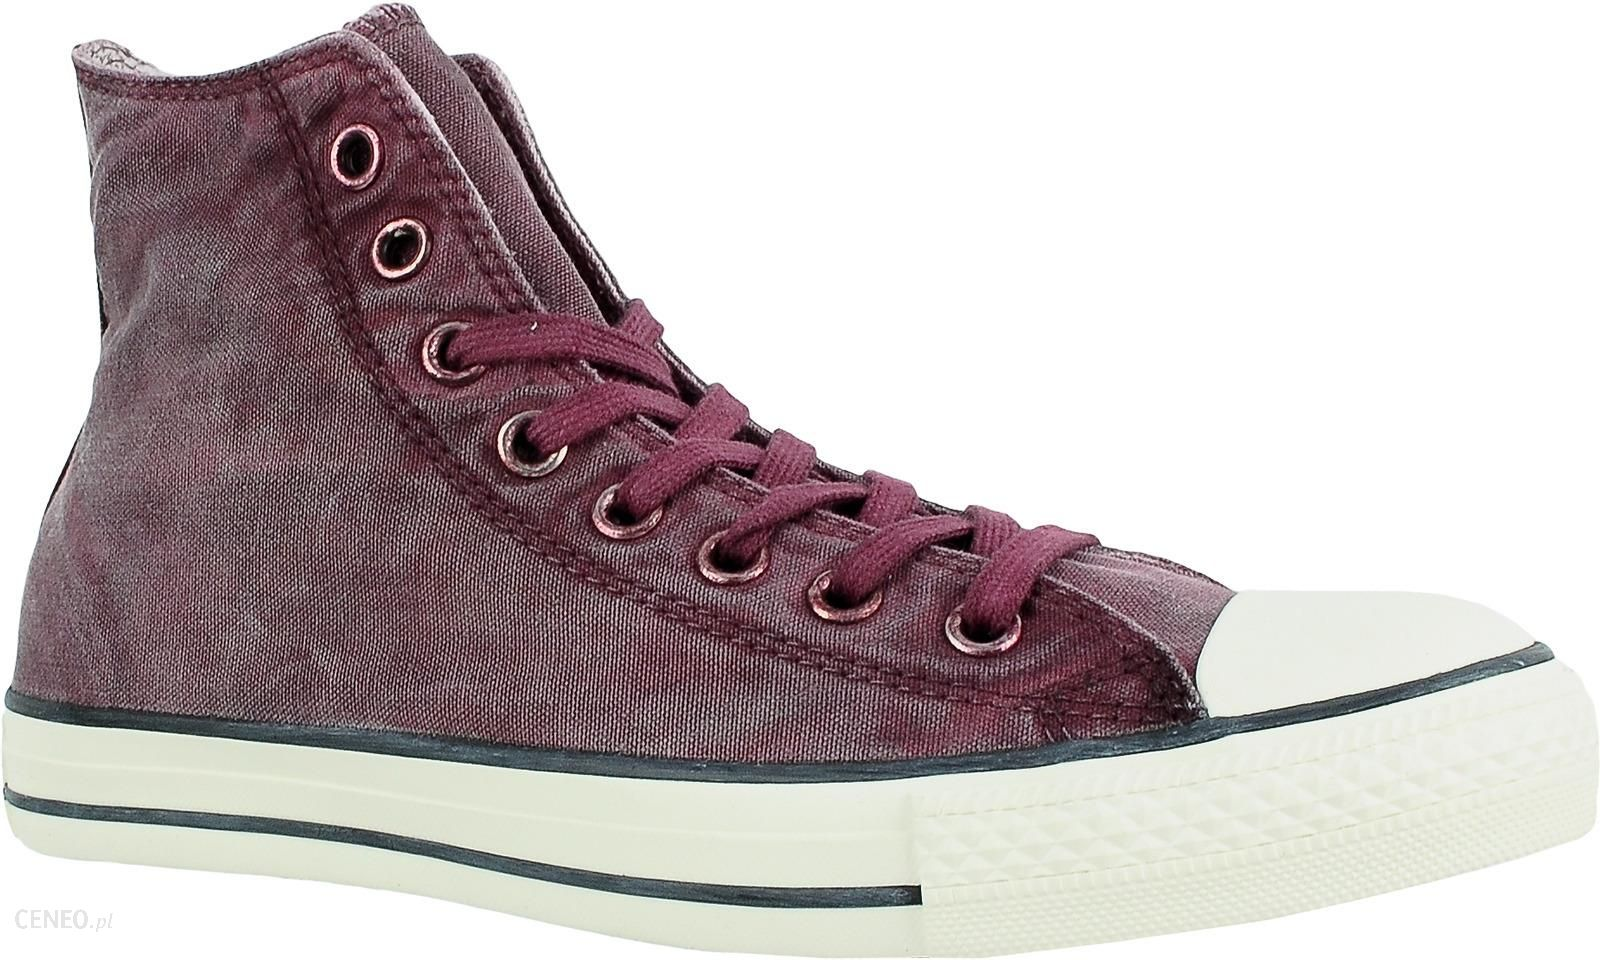 920076c715ecb Converse trampki Chuck Taylor All Star Washed Canvas Branch/Black/Egret 40  - zdjęcie